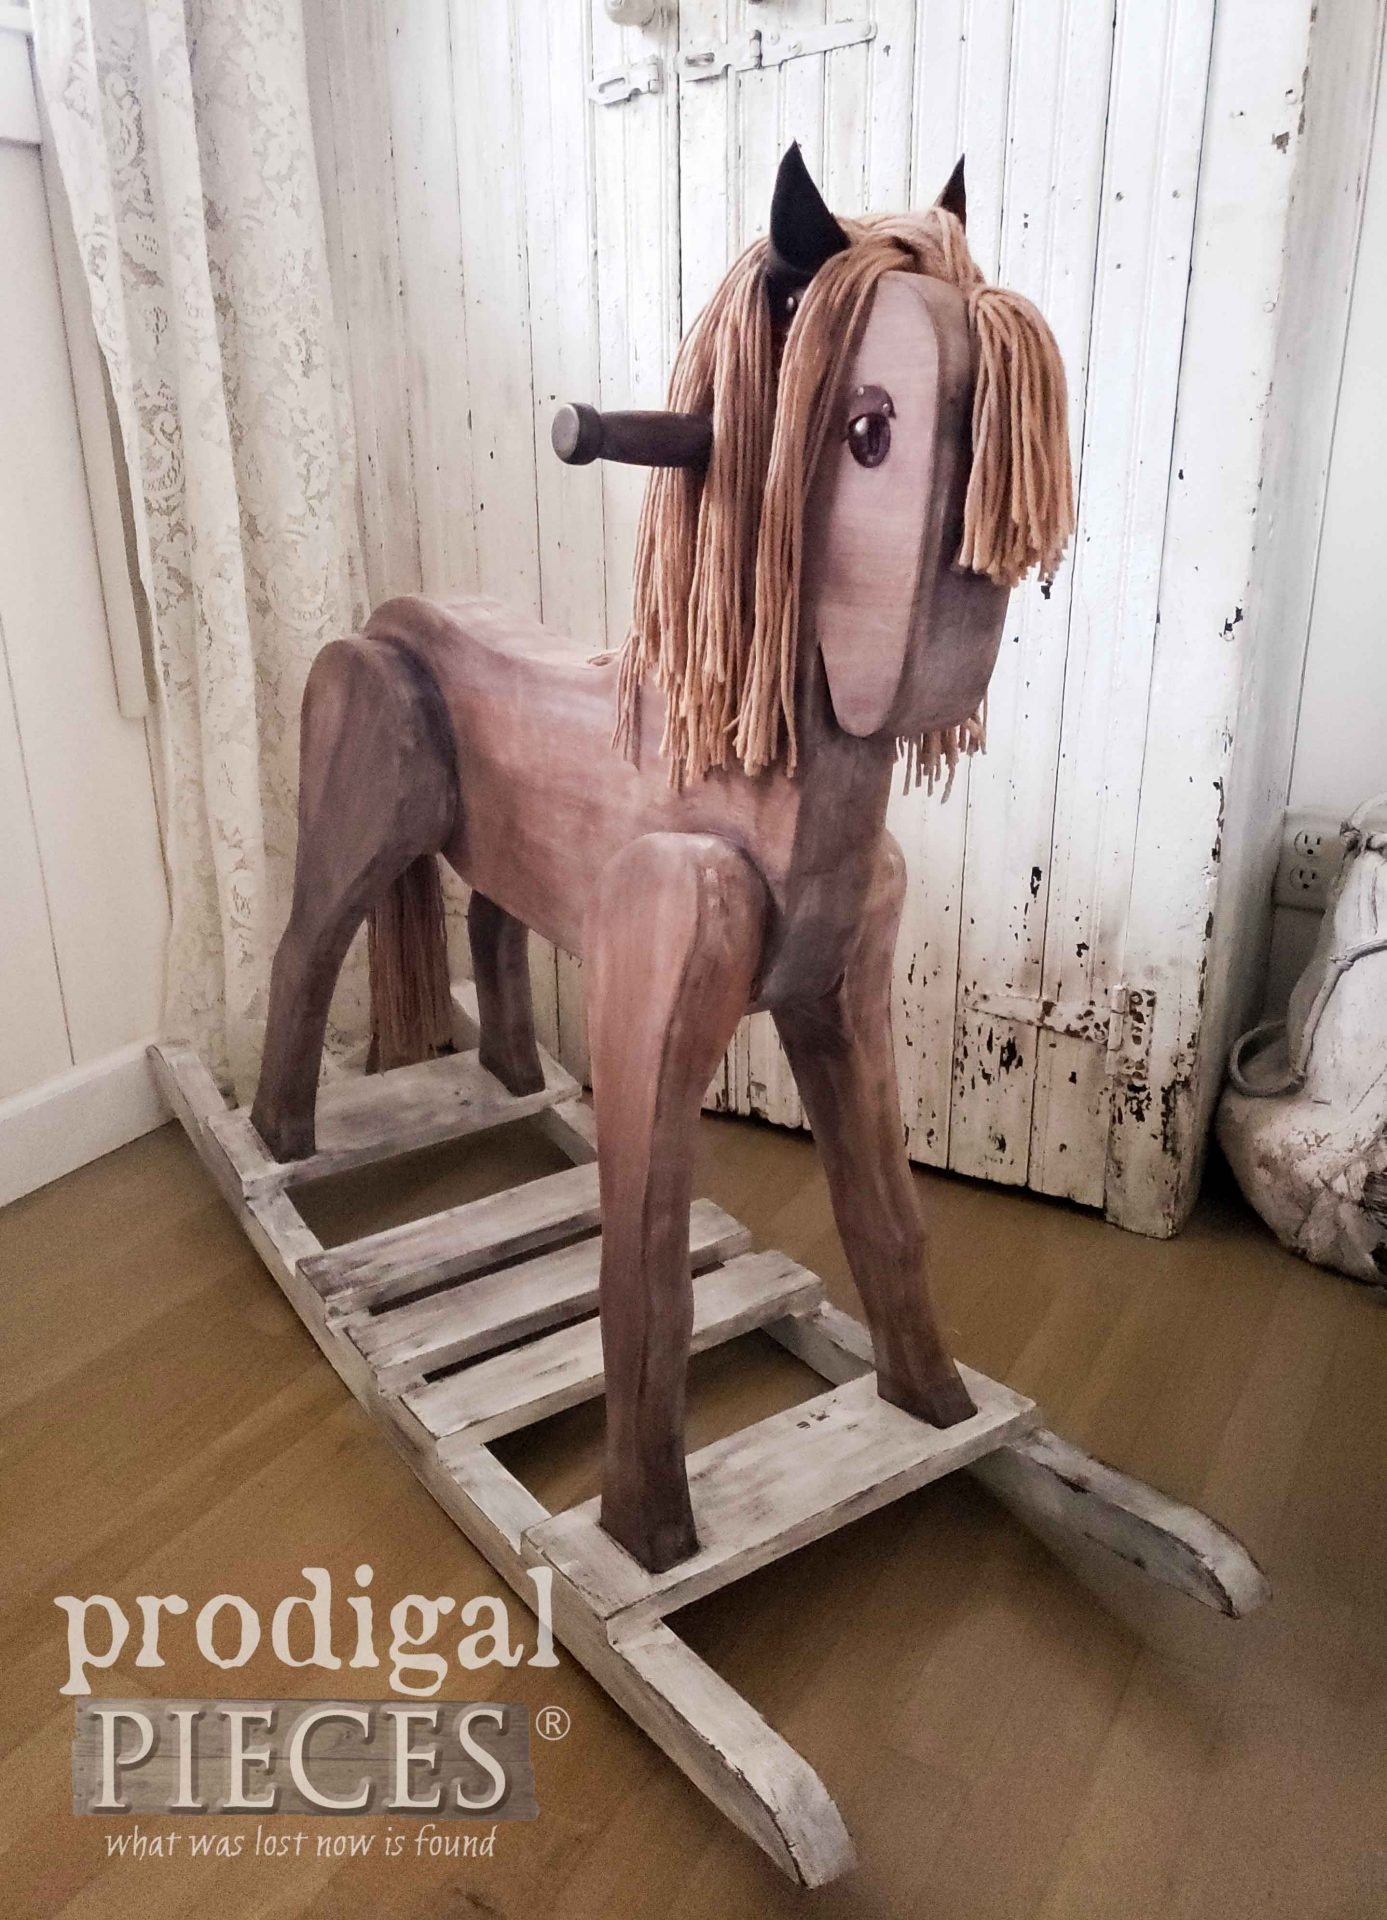 Vintage Farmhouse Rocking Horse as Refinished by Larissa of Prodigal Pieces | prodigalpieces.com #prodigalpieces #farmhouse #toy #kids #home #handmade #homedecor